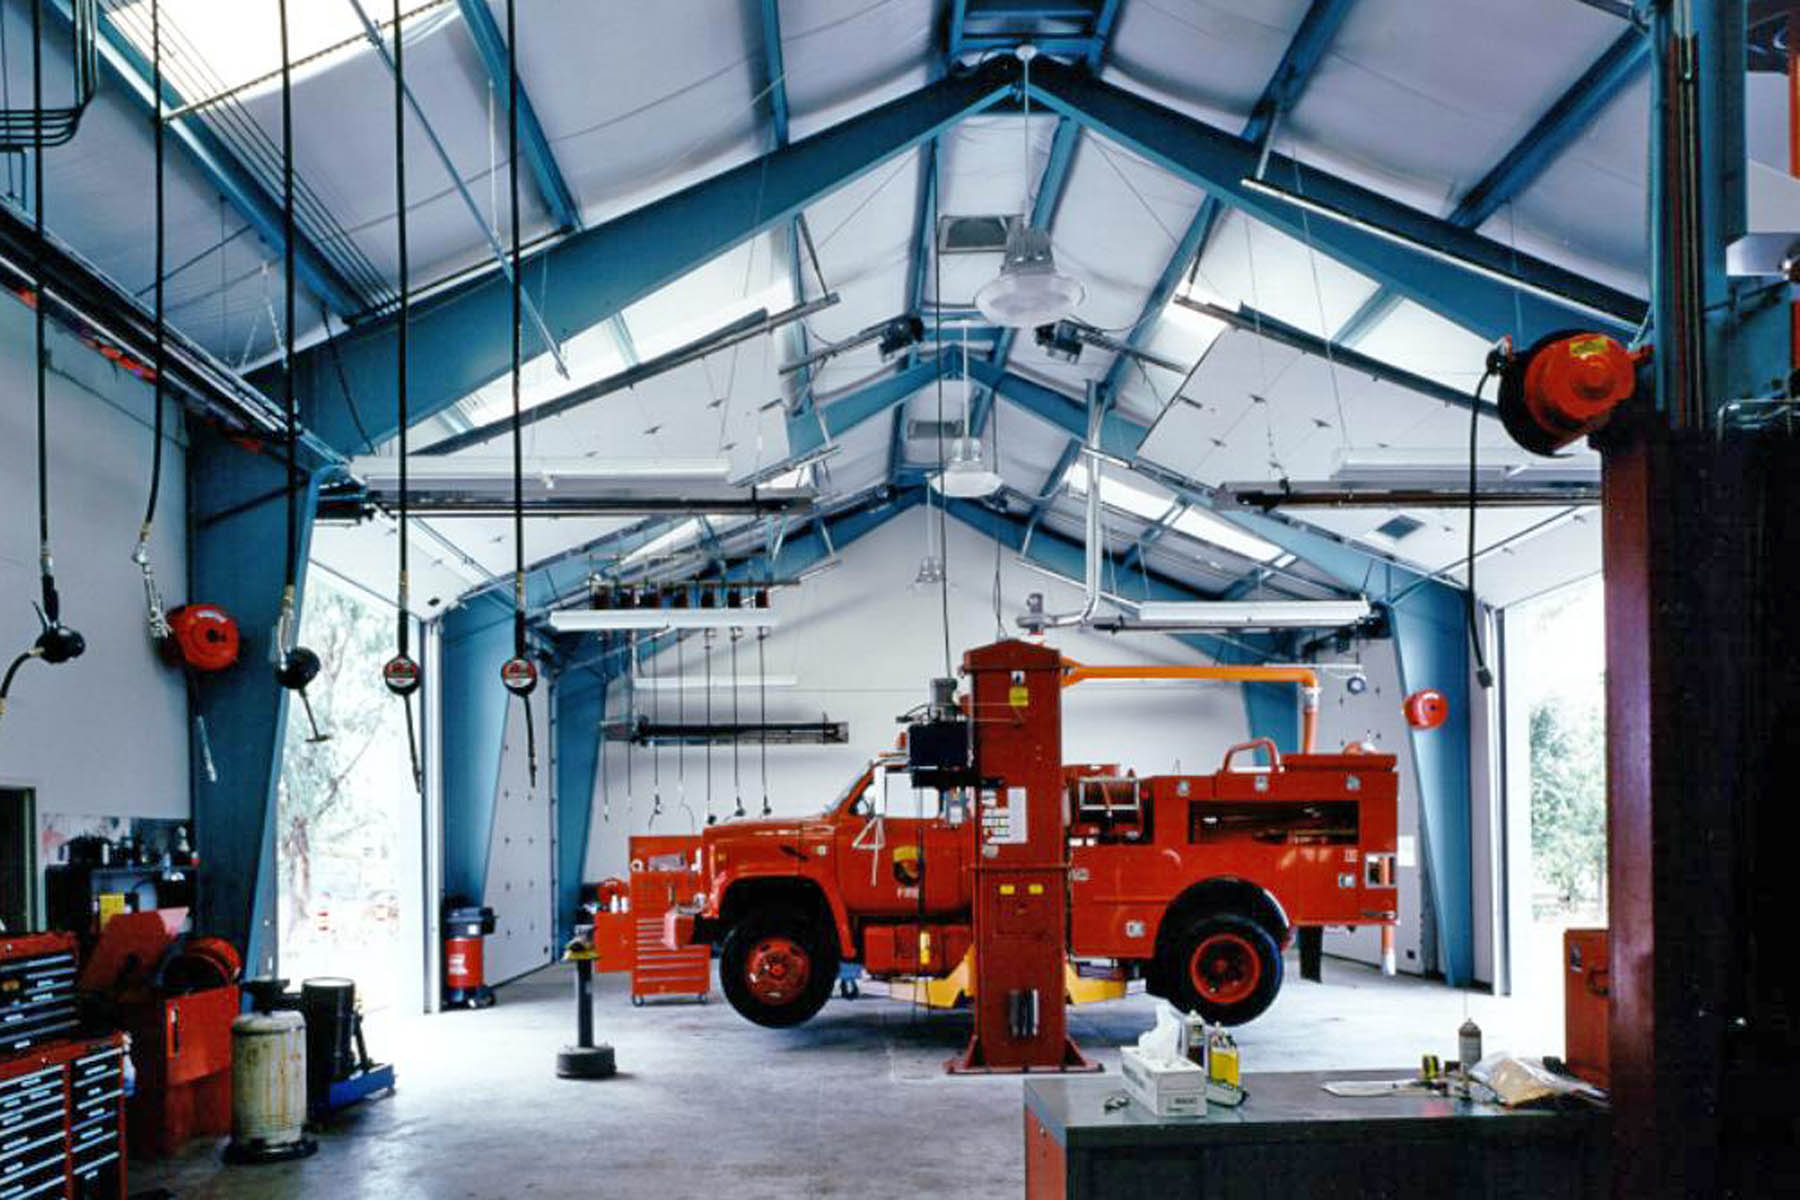 Sonoma County Auto Repair Facility | Public Safety | Glass Architects